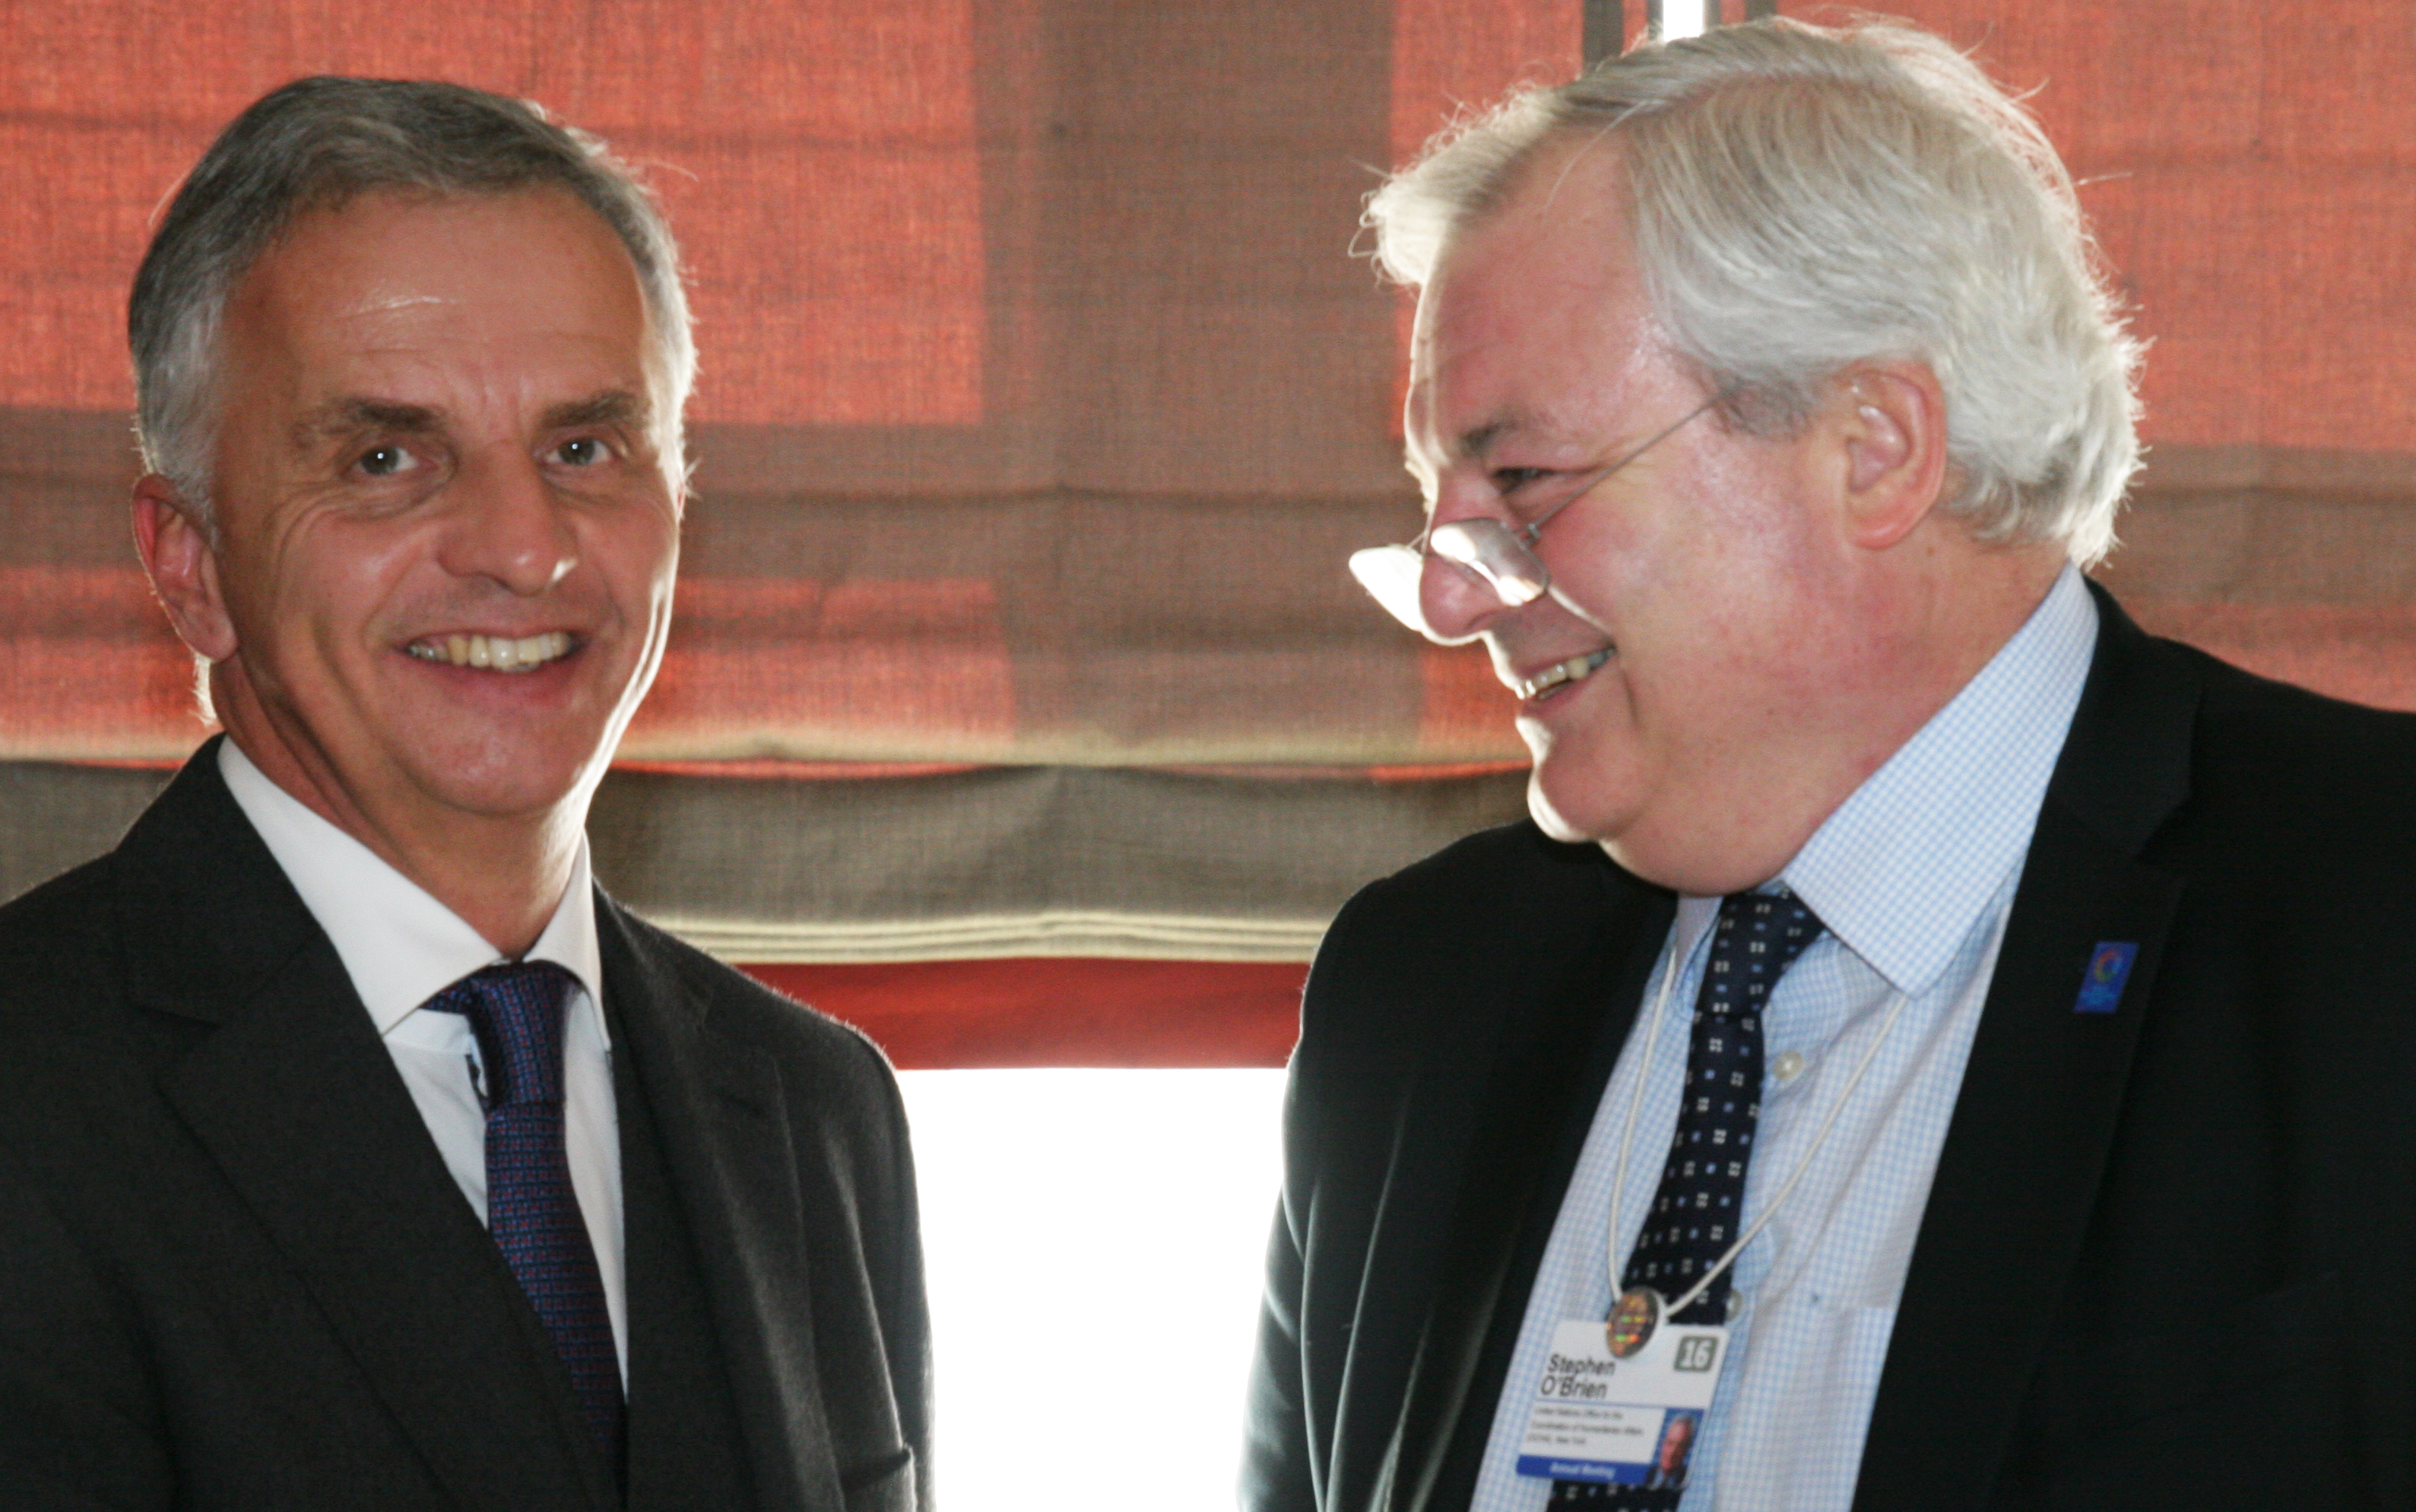 Federal Councillor Didier Burkhalter with Stephen O'Brien, United Nations' Undersecretary General for Humanitarian Affairs and Emergency Relief Coordinator. © FDFA